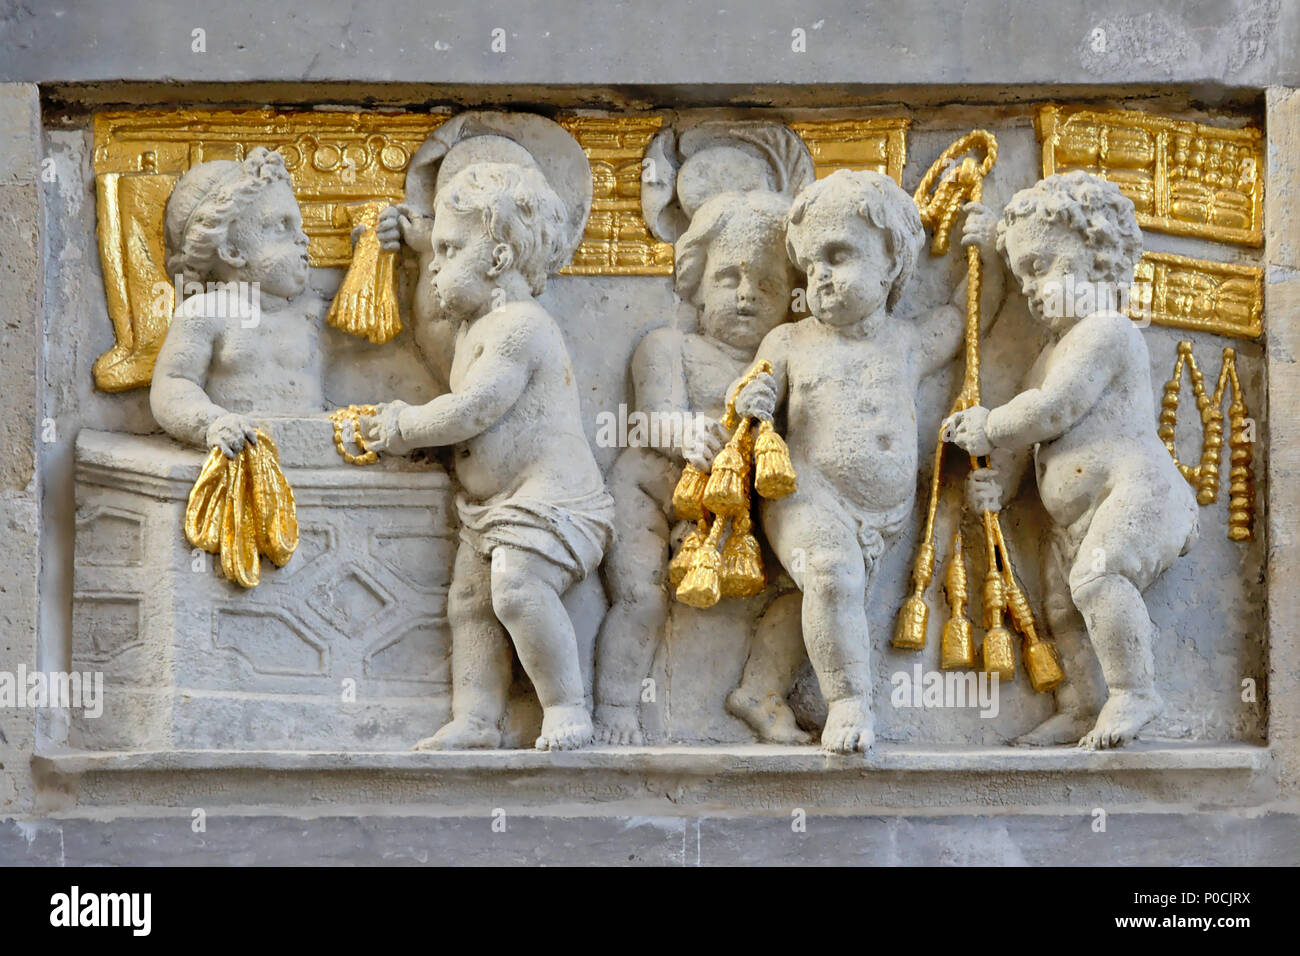 Bas relief in stone and gold of cherubs producing textile, found on the facade of a medieval house on Brussels Grand Place square - Stock Image